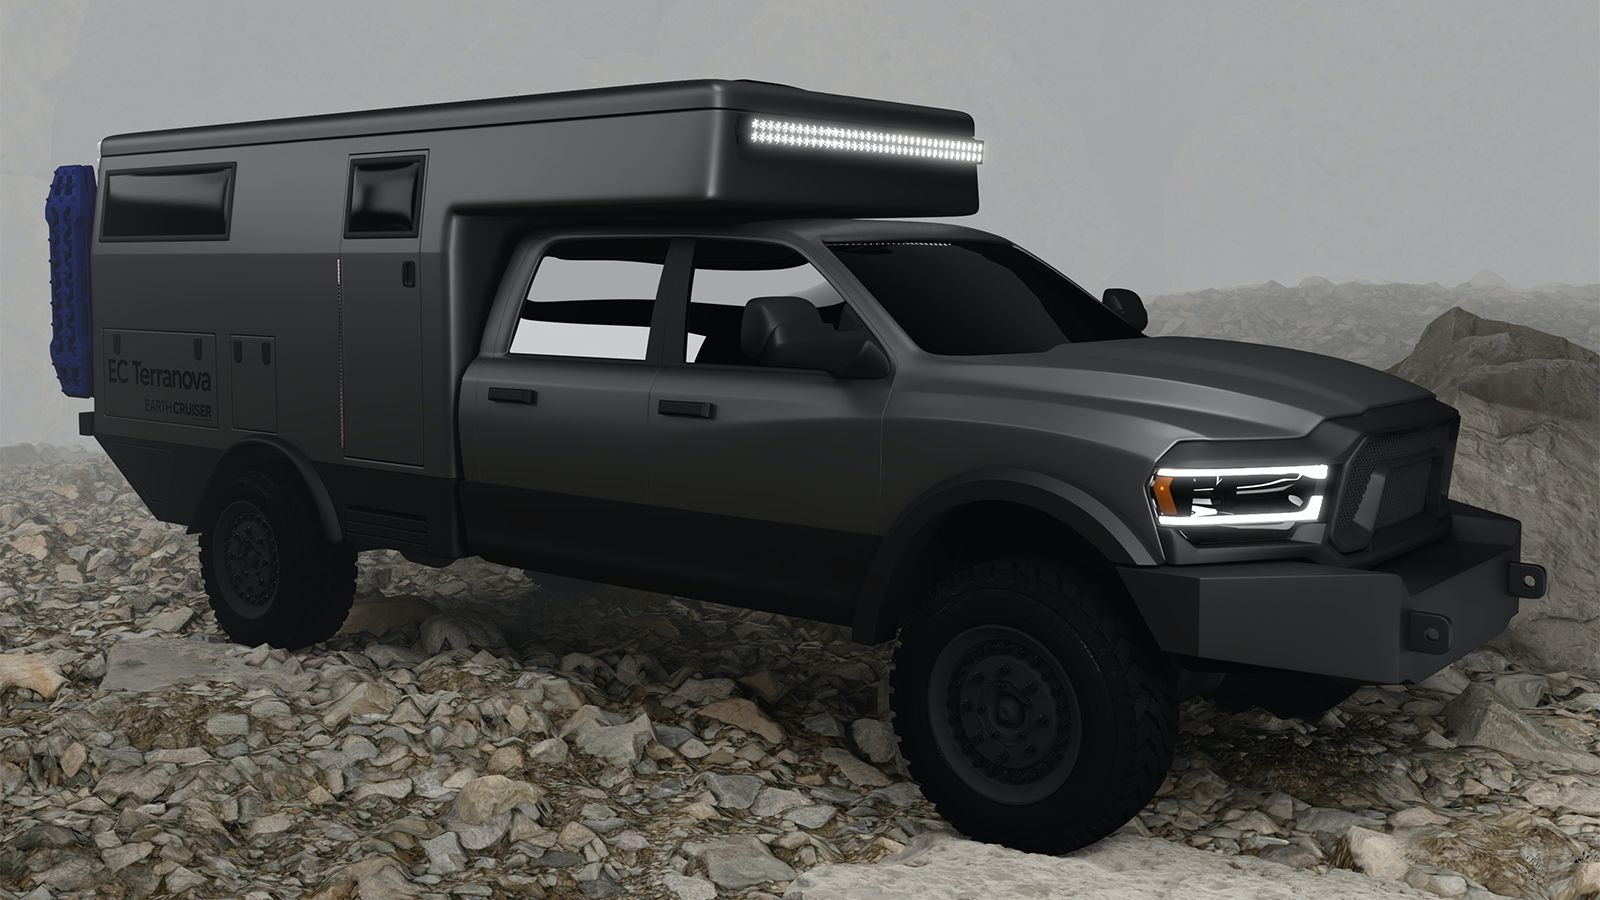 EarthCruiser EC Terranova pick-up camper